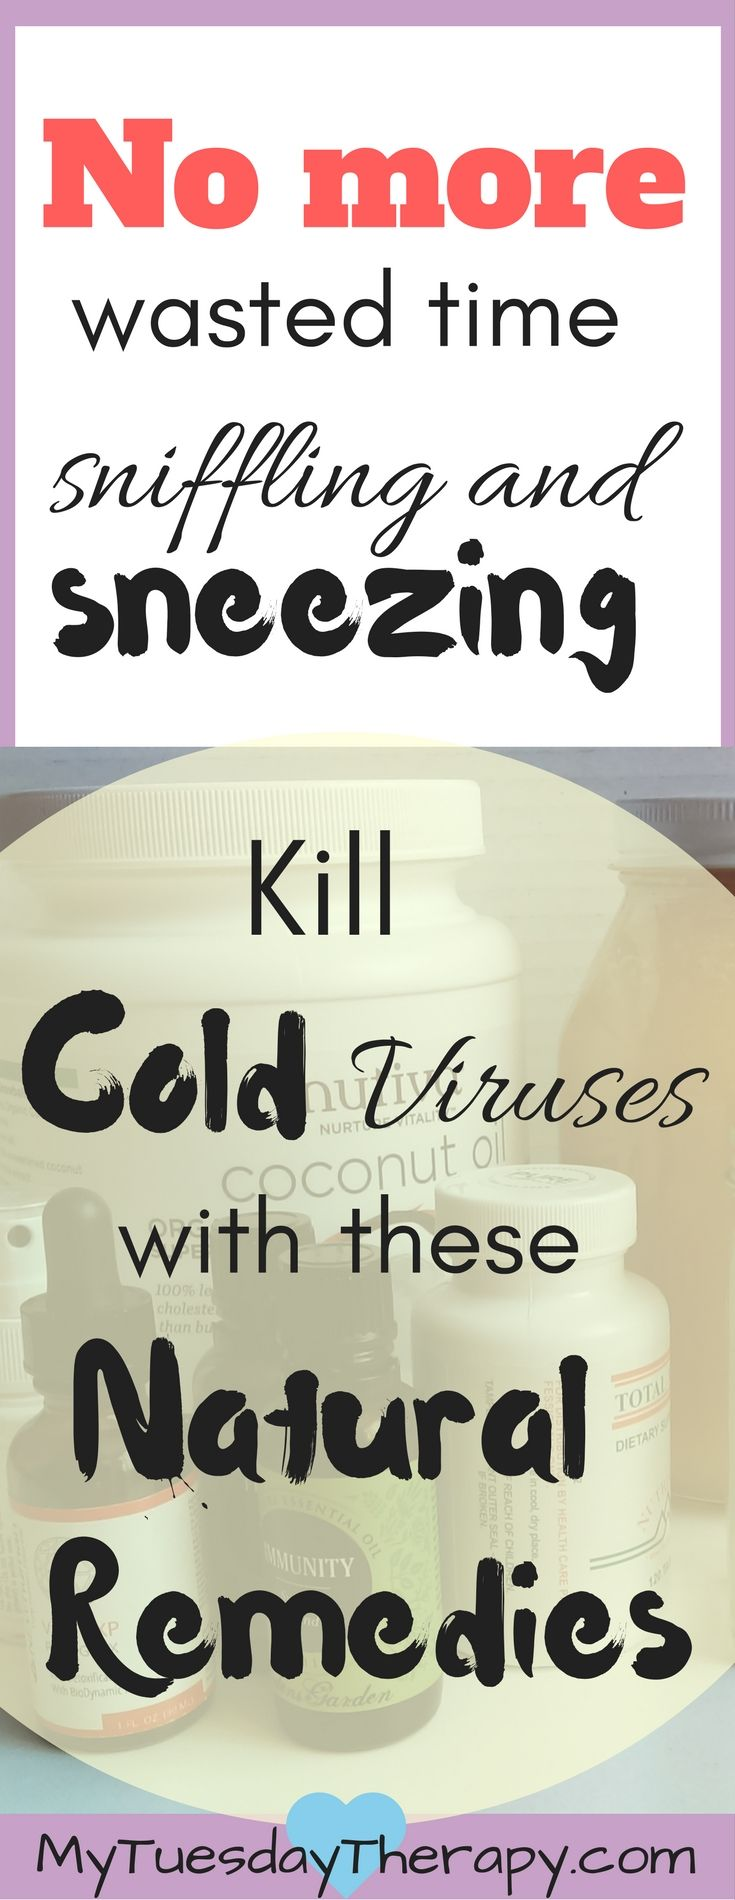 Kill cold viruses with these natural remedies. They really work! Sneezing, stuffy nose, aching everywhere... Who has time for that! Prepare a cold season kit with the best natural remedies for cold! | Cold and Flu supplements | Boost your immune system | #naturalremedies #immunesystem #naturalremediesforcolds via @www.pinterest.com/mytuestherapy